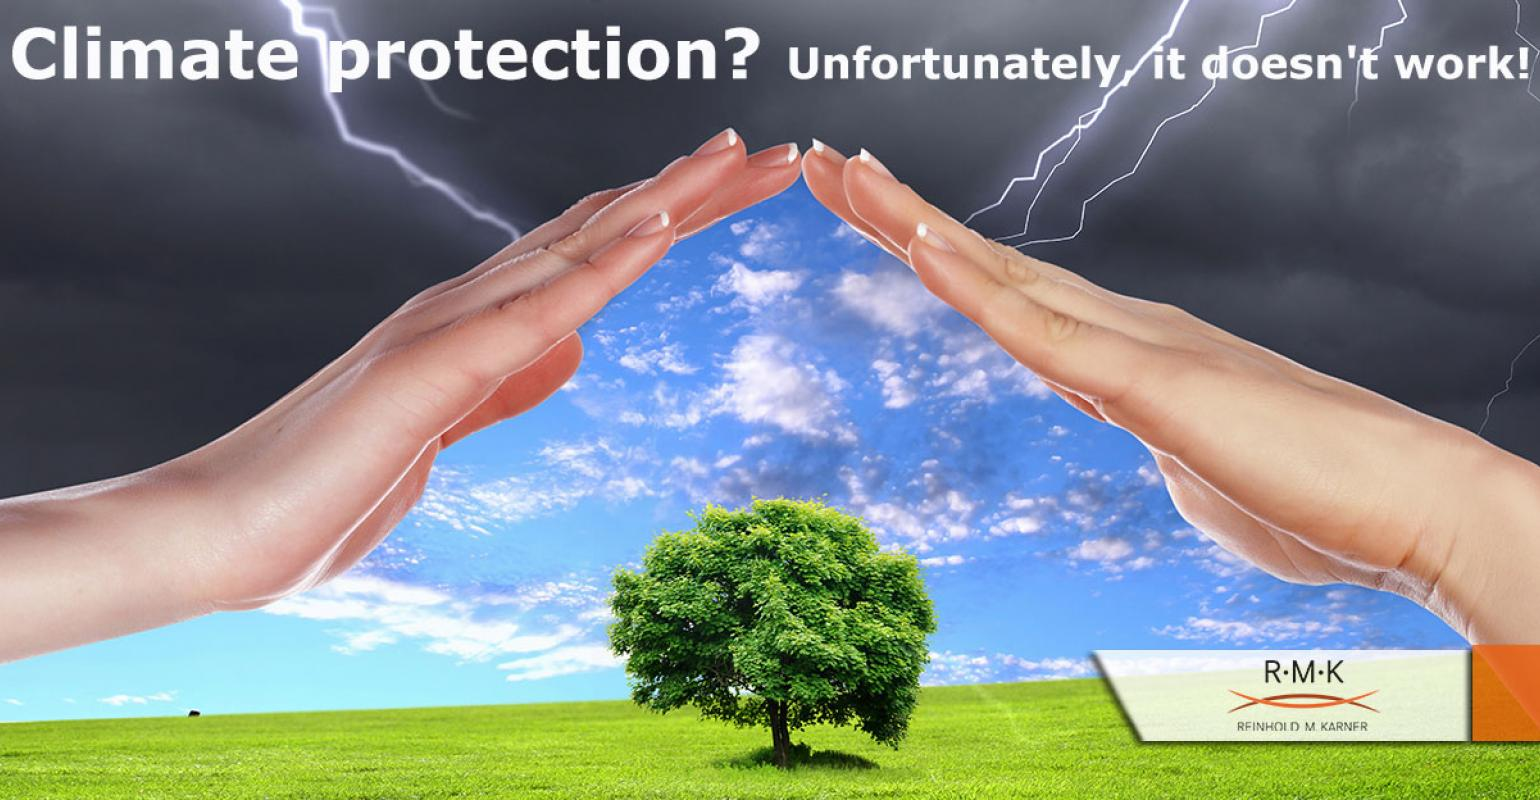 Climate protection? Unfortunately, it doesn't work!